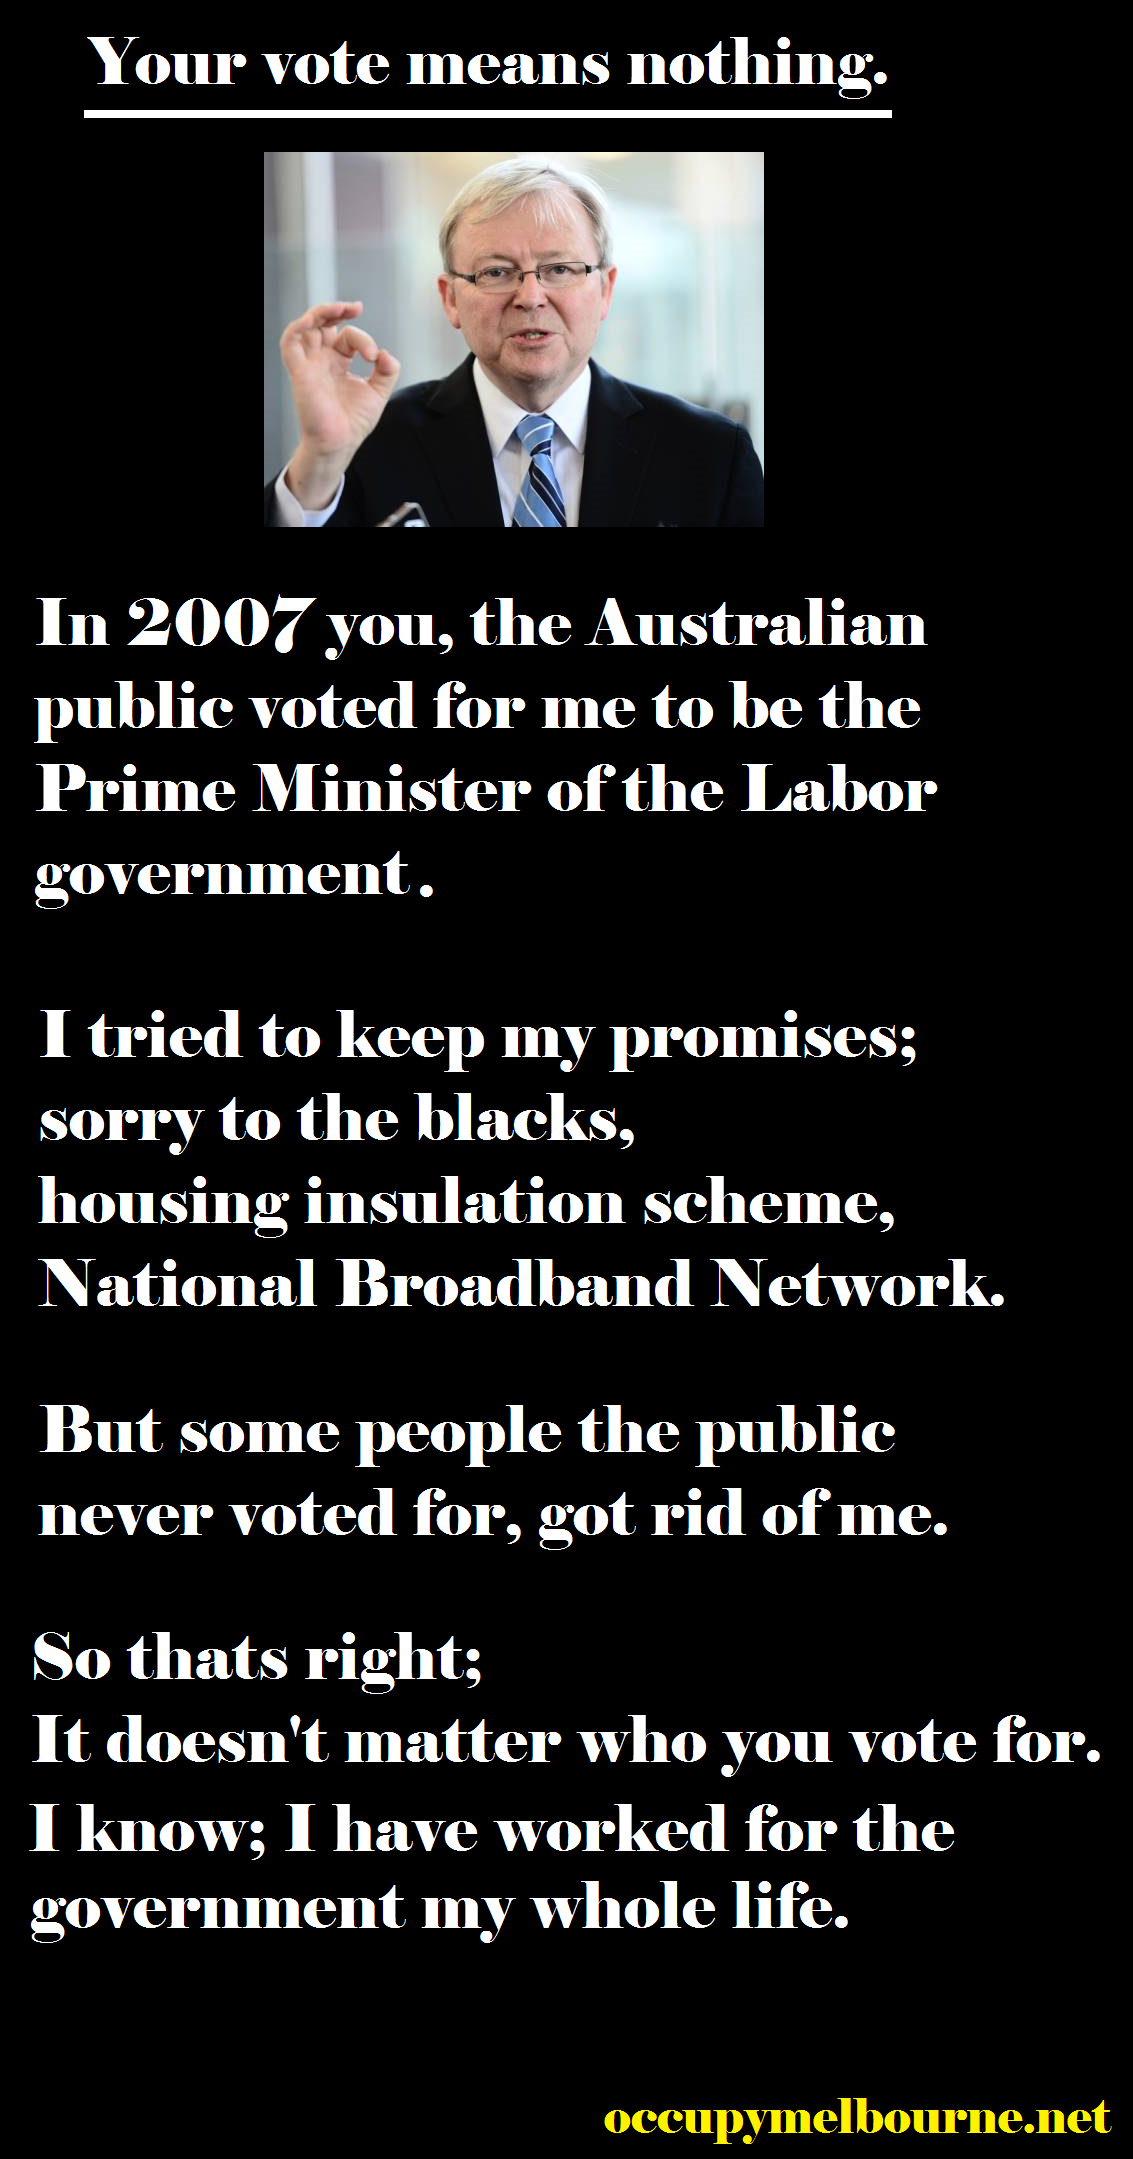 Kevin Rudd's quote #5